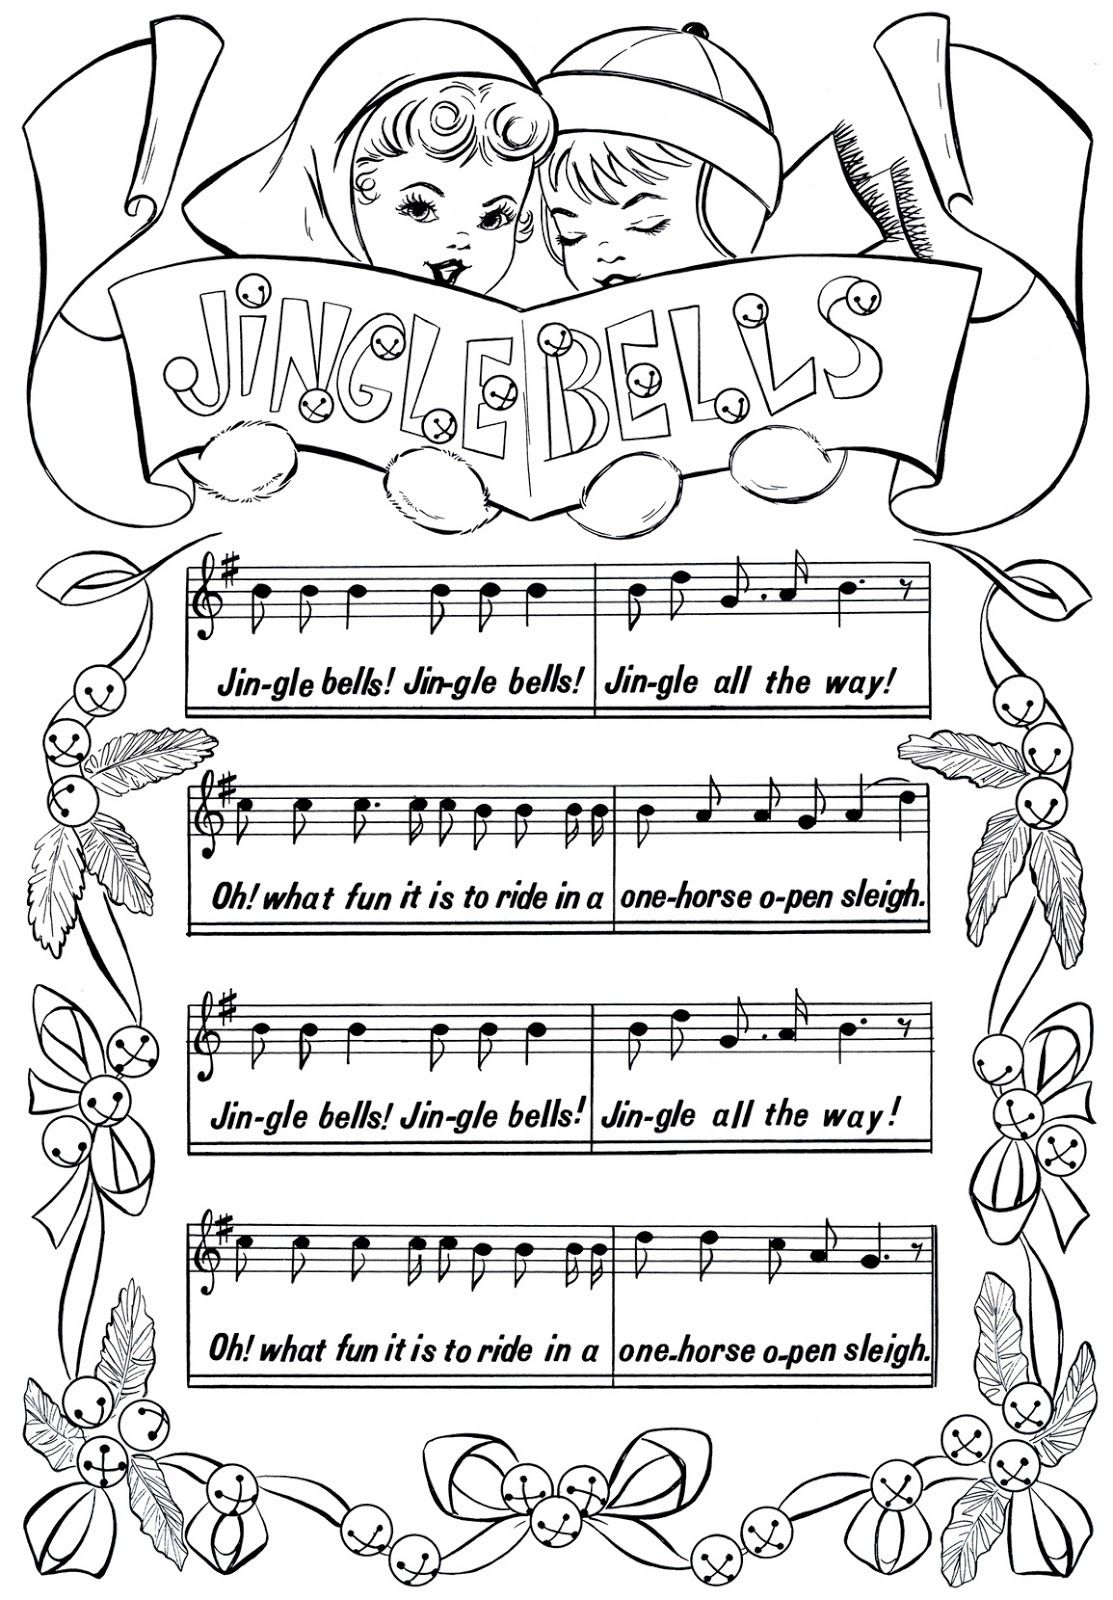 free printable jingle bells sheet music it is my opinion this